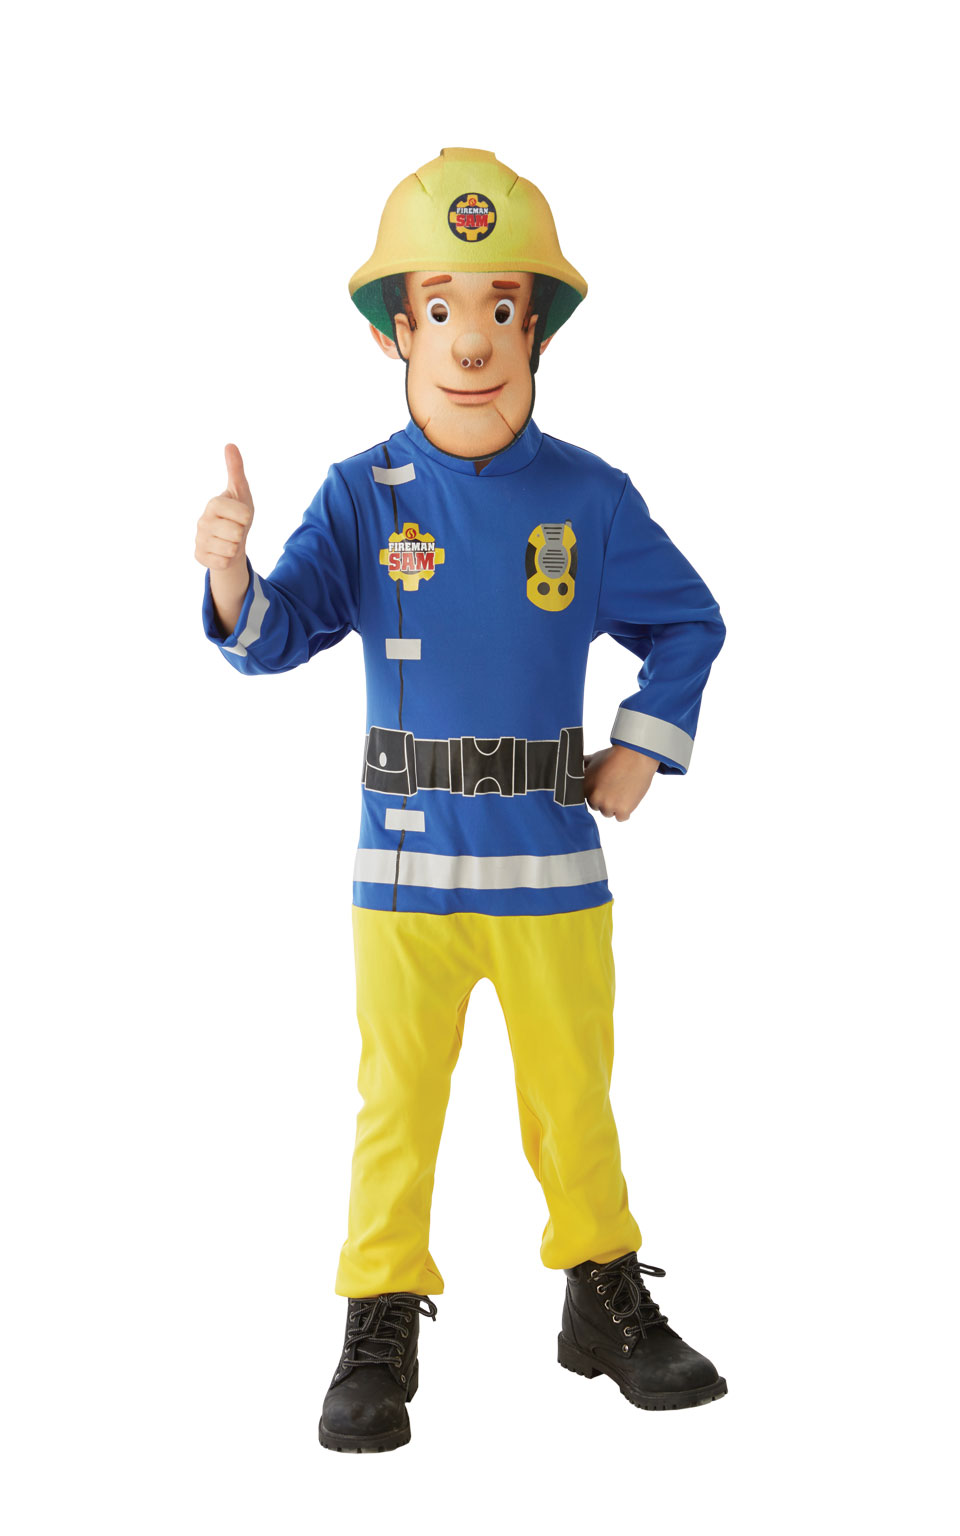 It's just an image of Mesmerizing Fireman Sam Pic